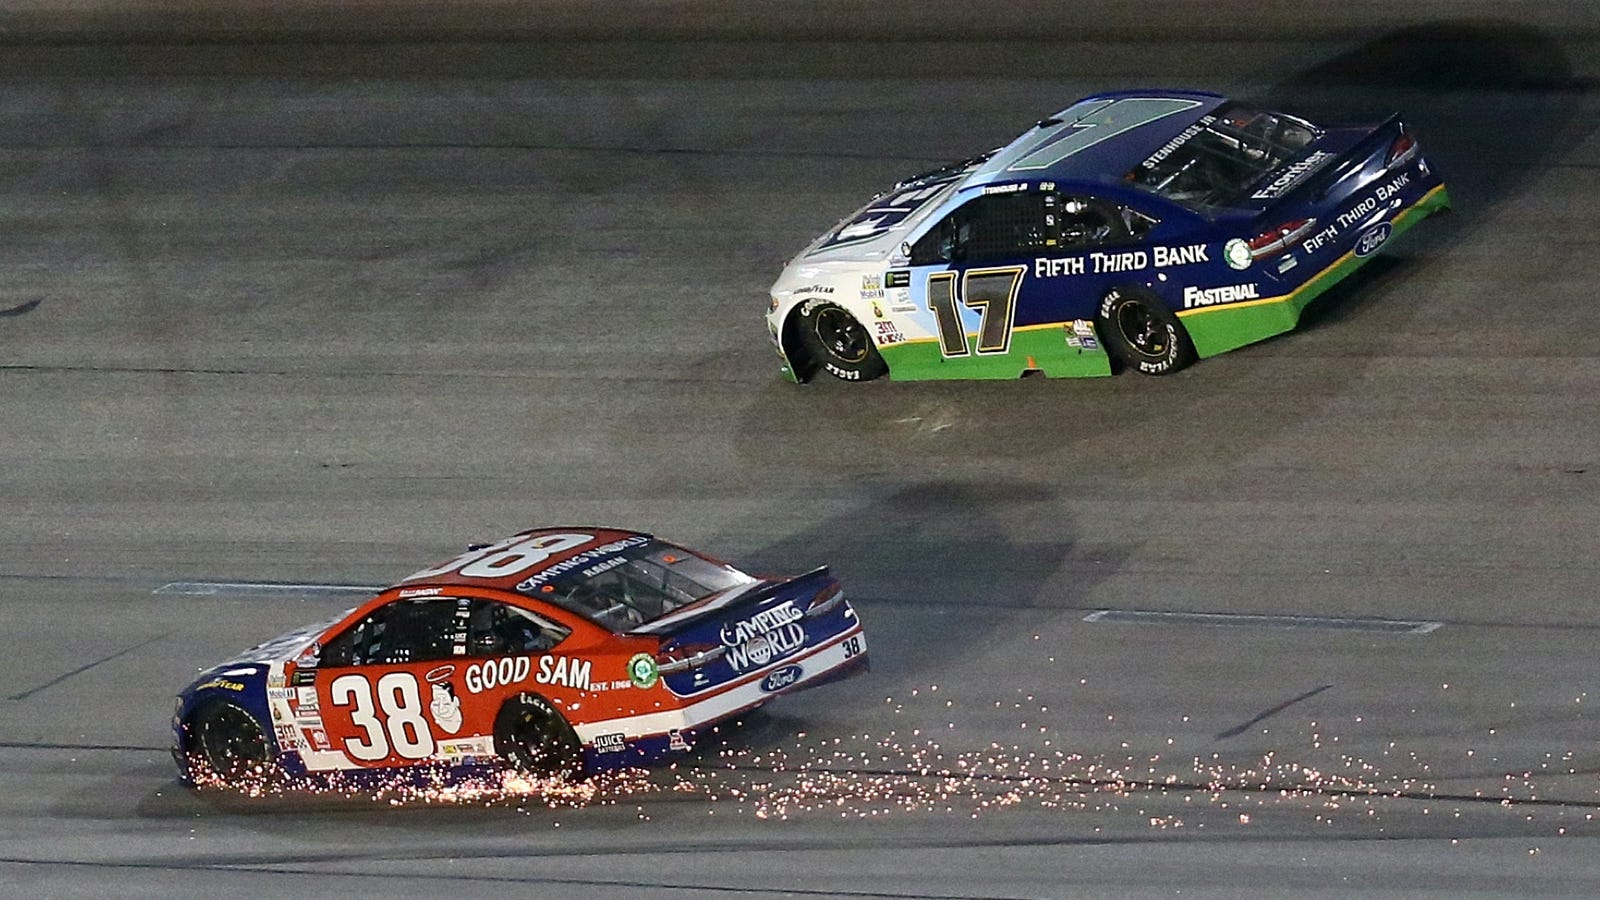 Nascar is trying engine rules like the ones everyone hates in formula one